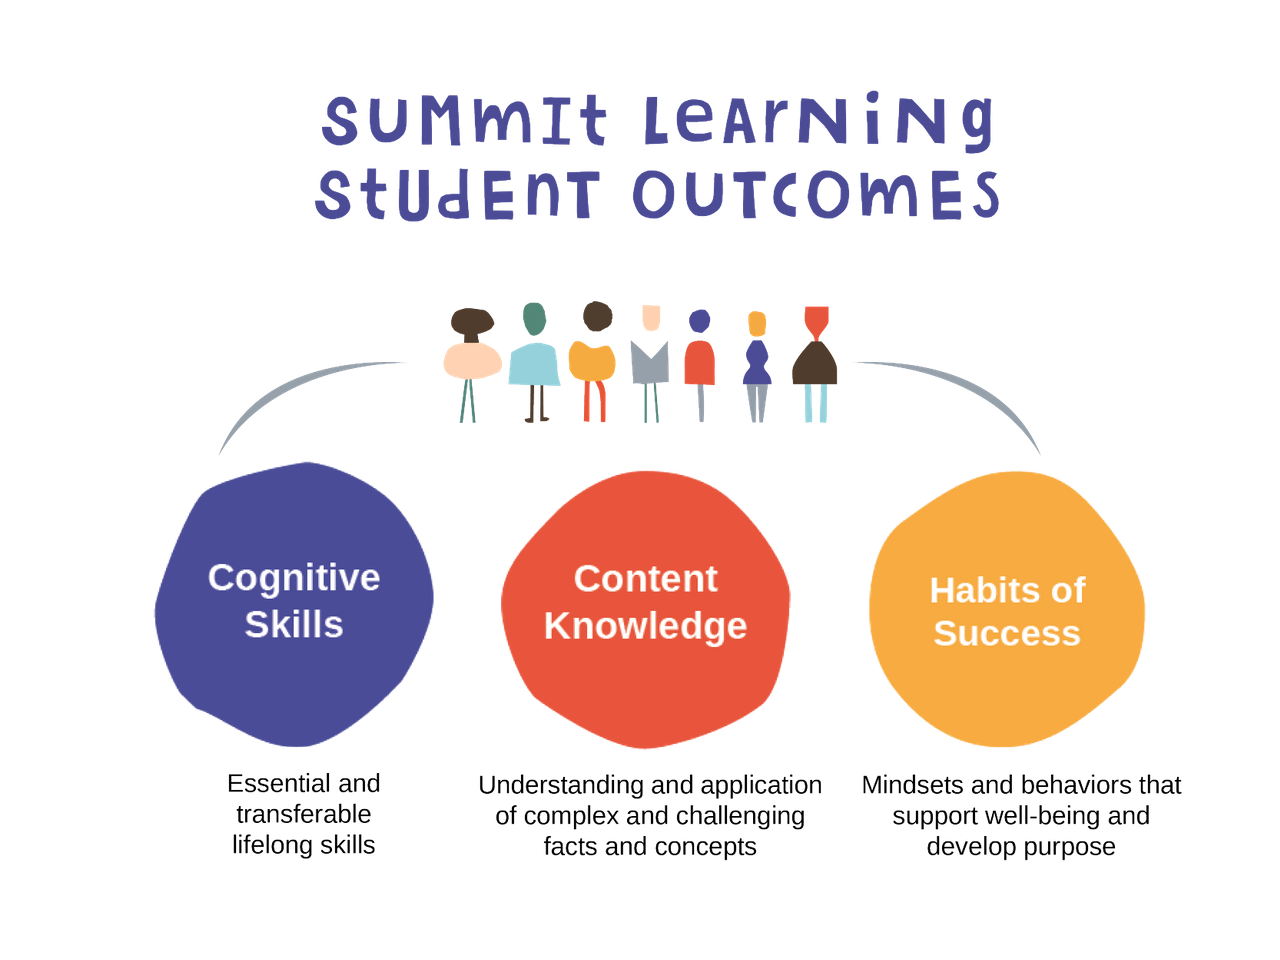 Summit Learning Outcomes: Cognitive Skills, Content Knowledge, Habits of Success